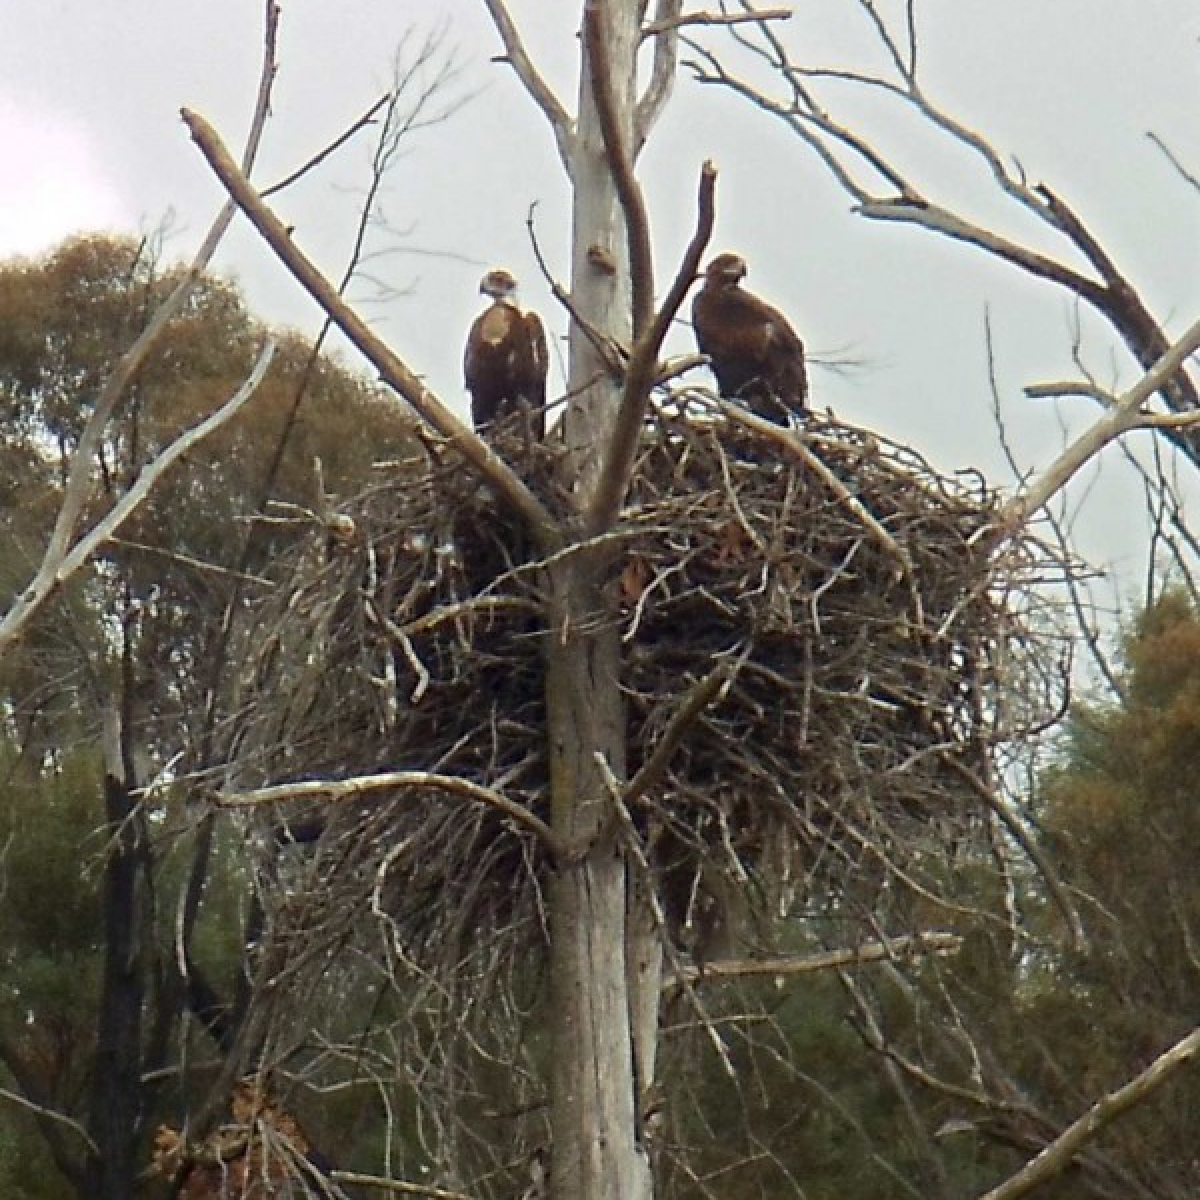 322 Wedge-tailed Eagle chicks